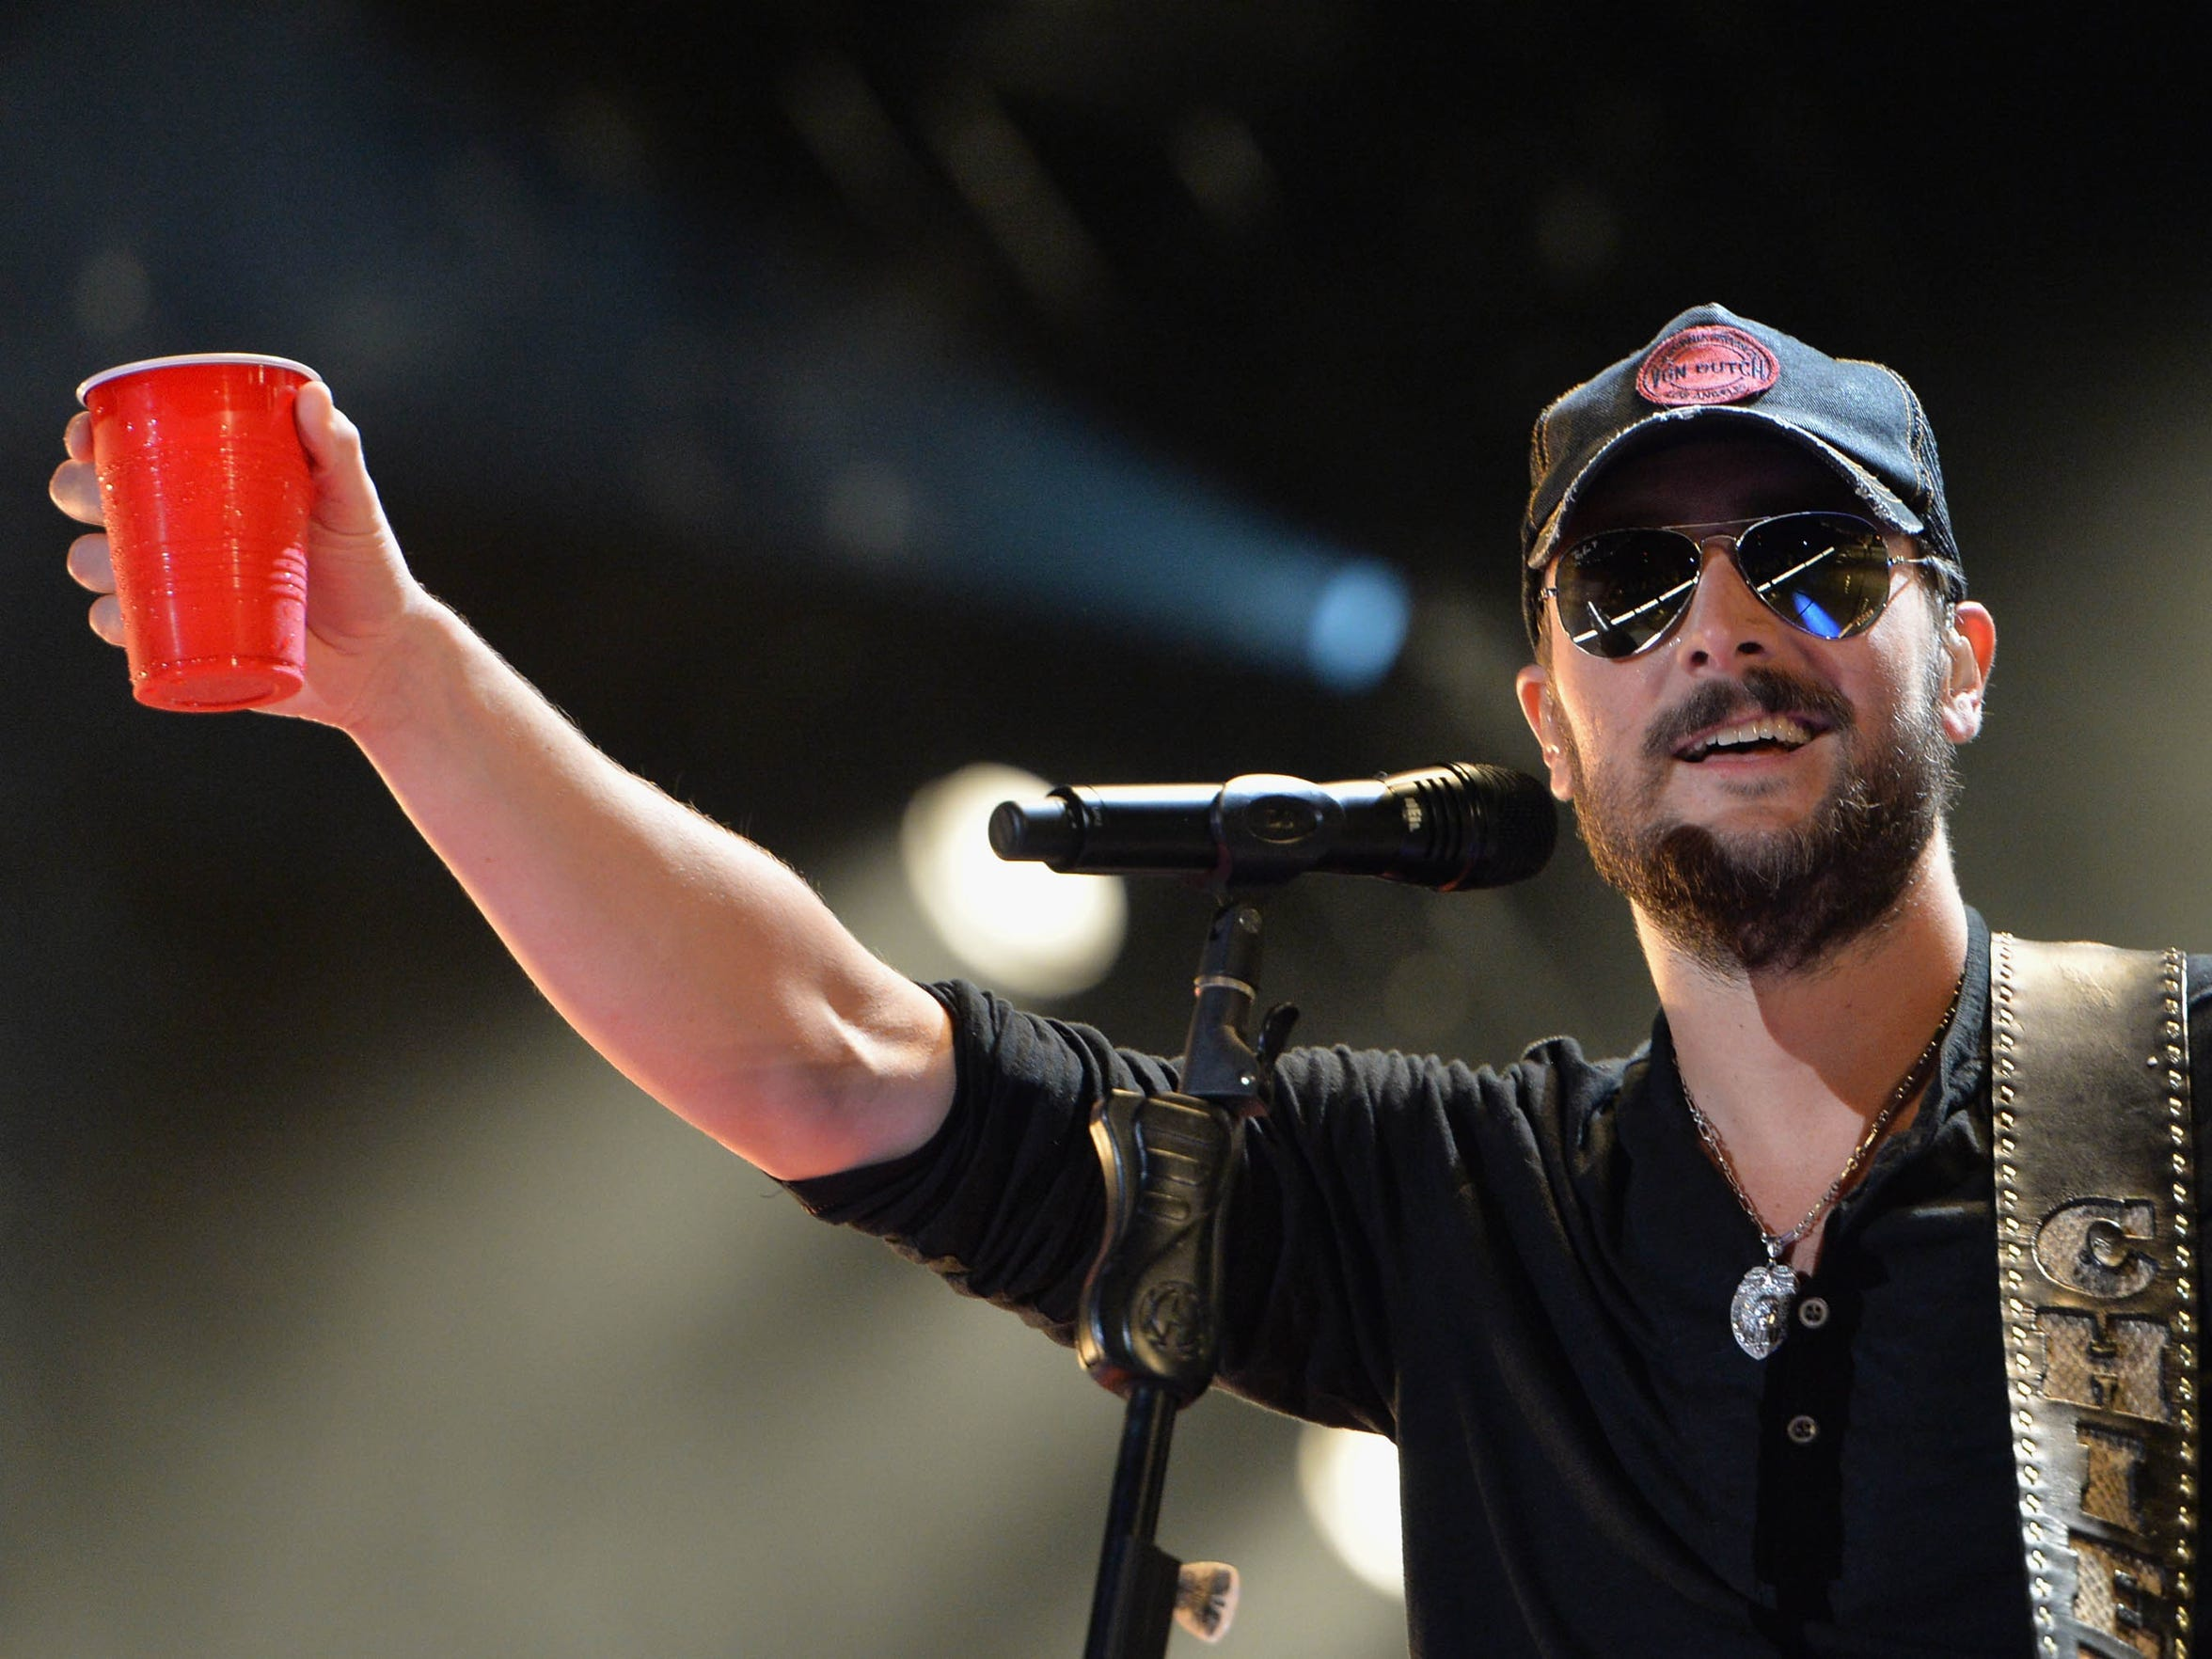 Eric Church is one of the main attractions at Country